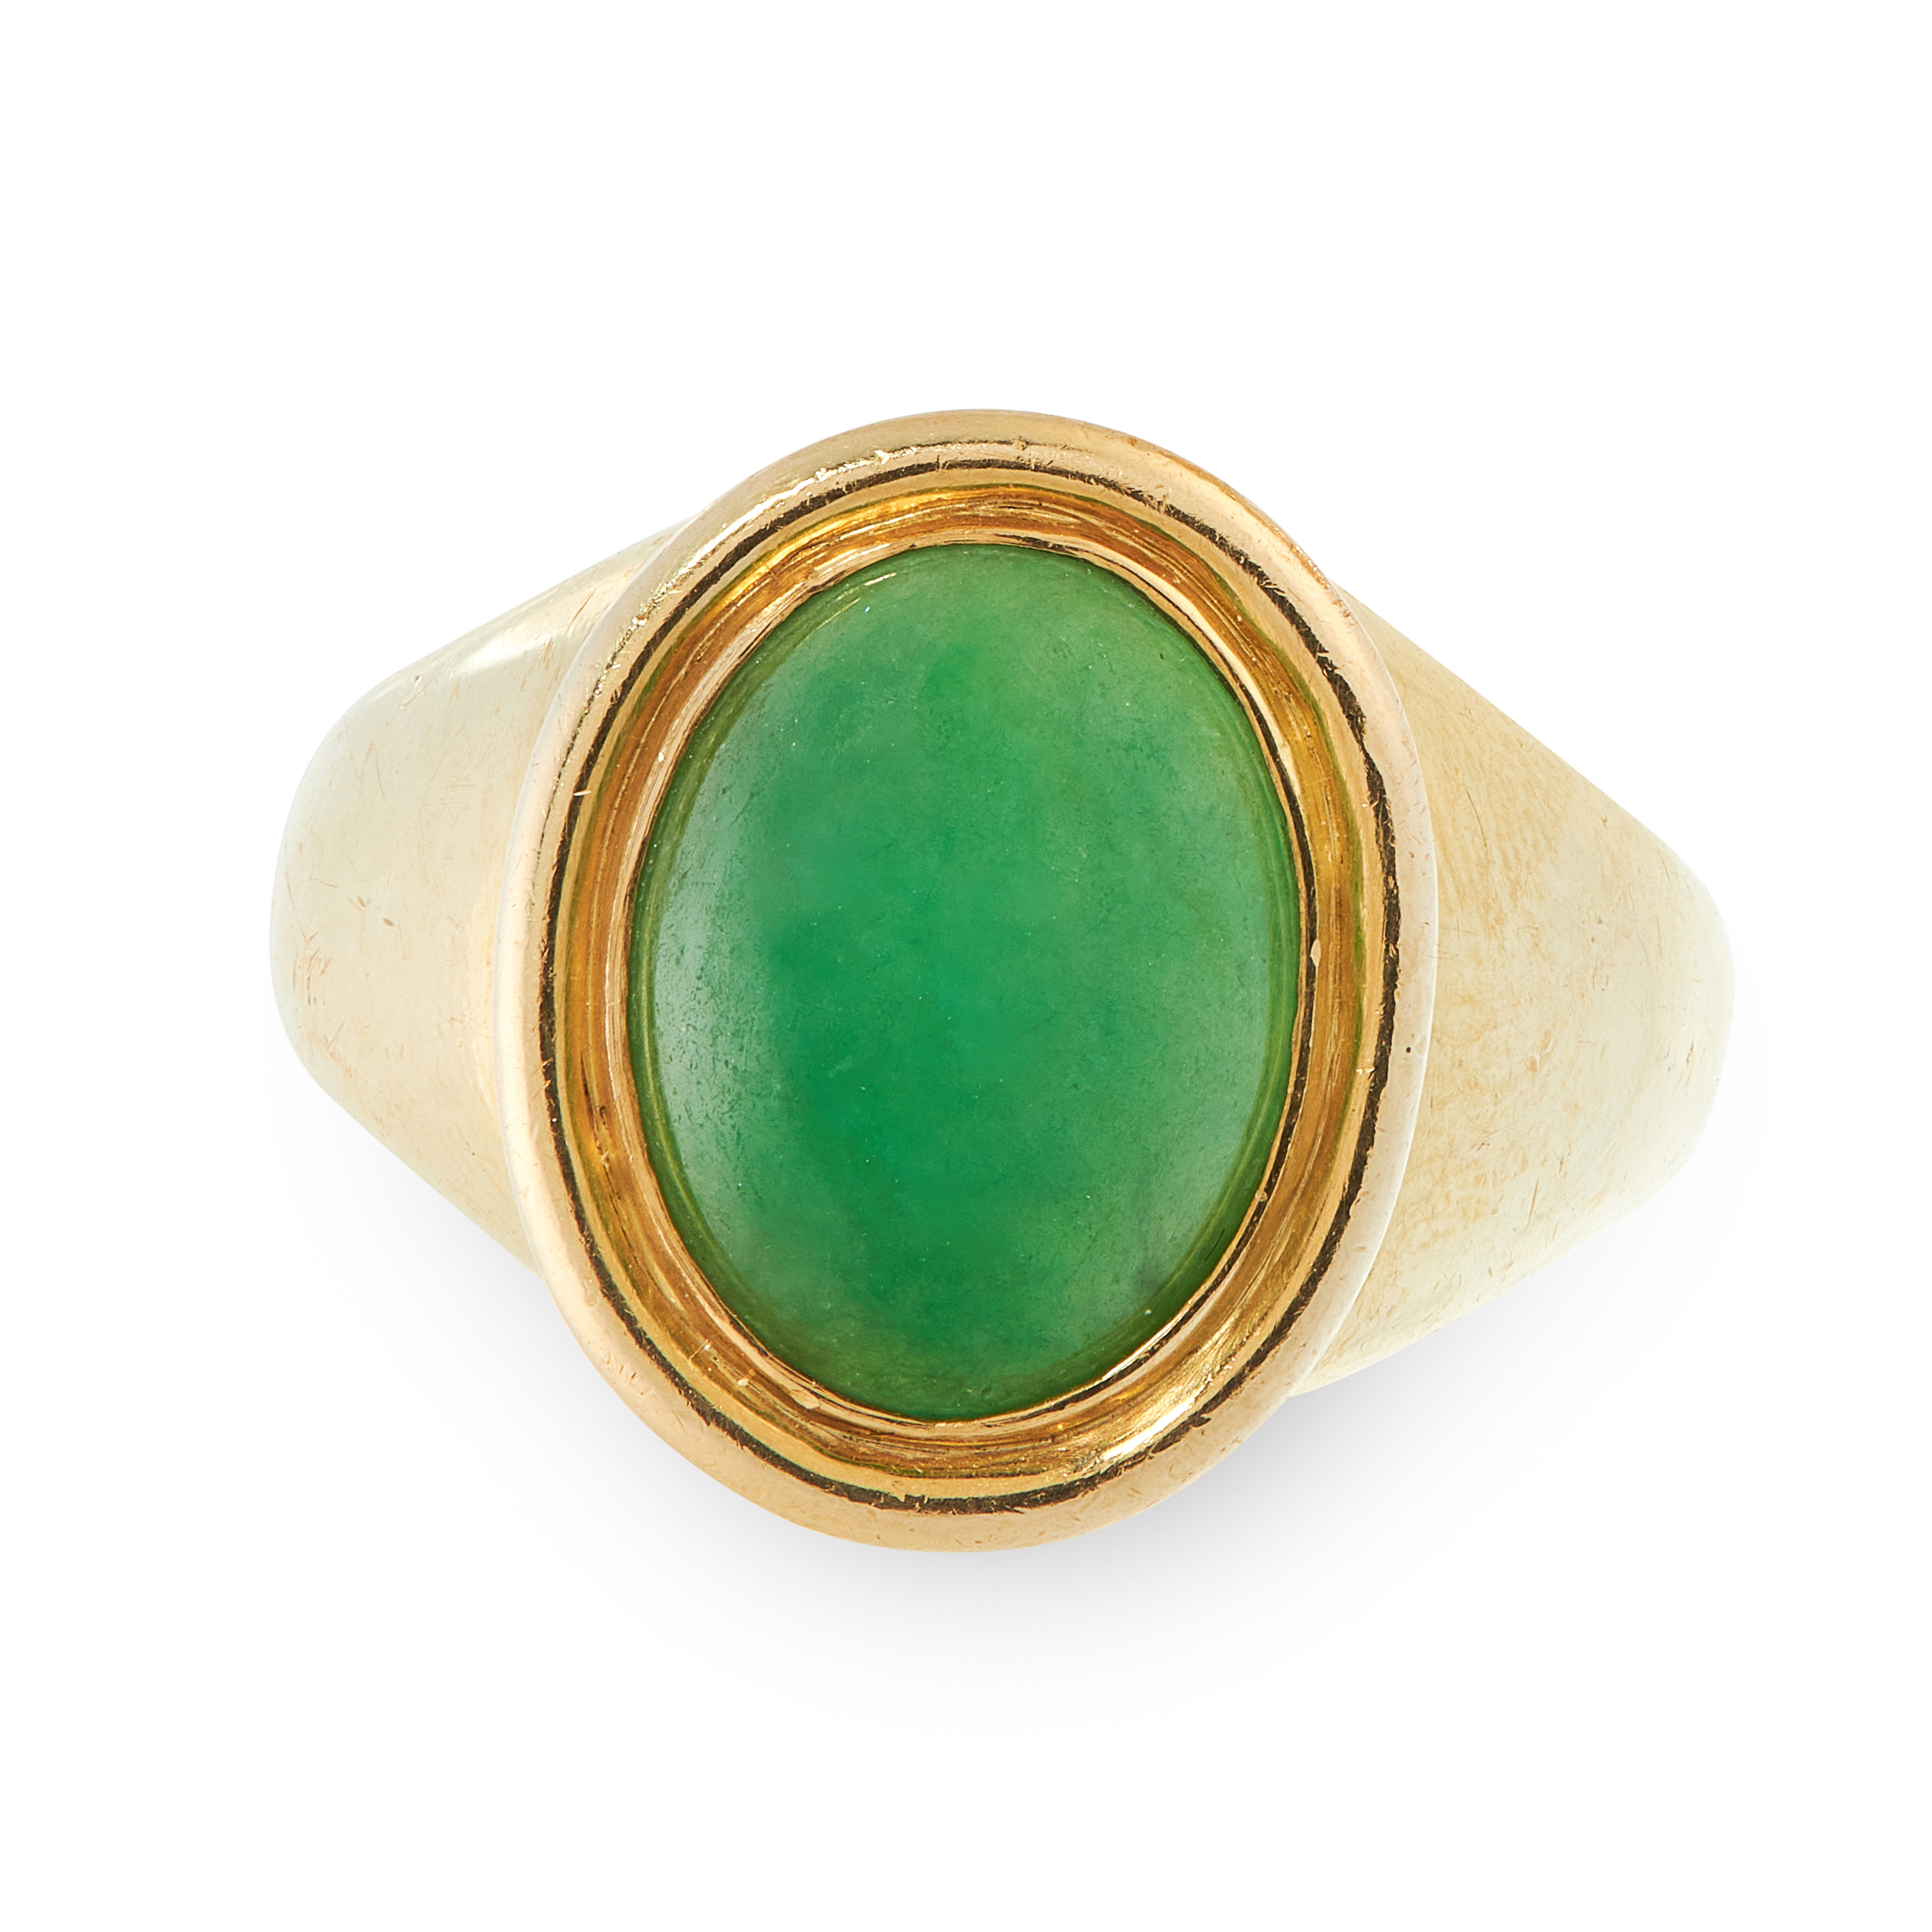 A NATURAL JADEITE JADE DRESS RING in 18ct yellow gold, the tapering band set with an oval jadeite